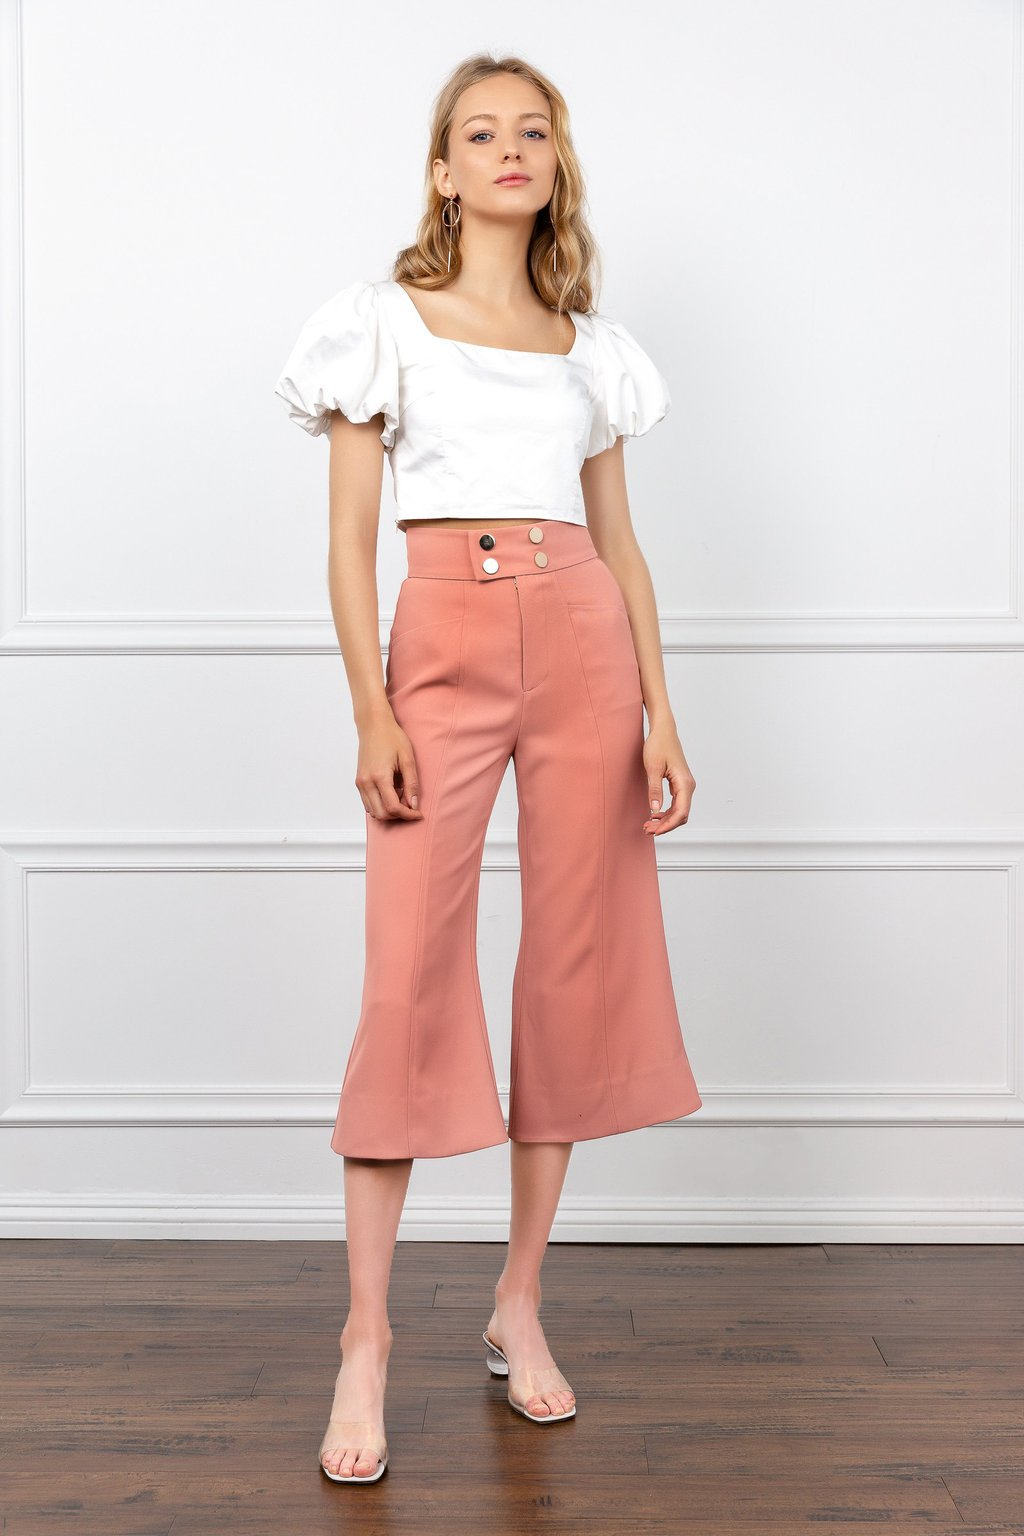 J.ING's peach colored cropped pants